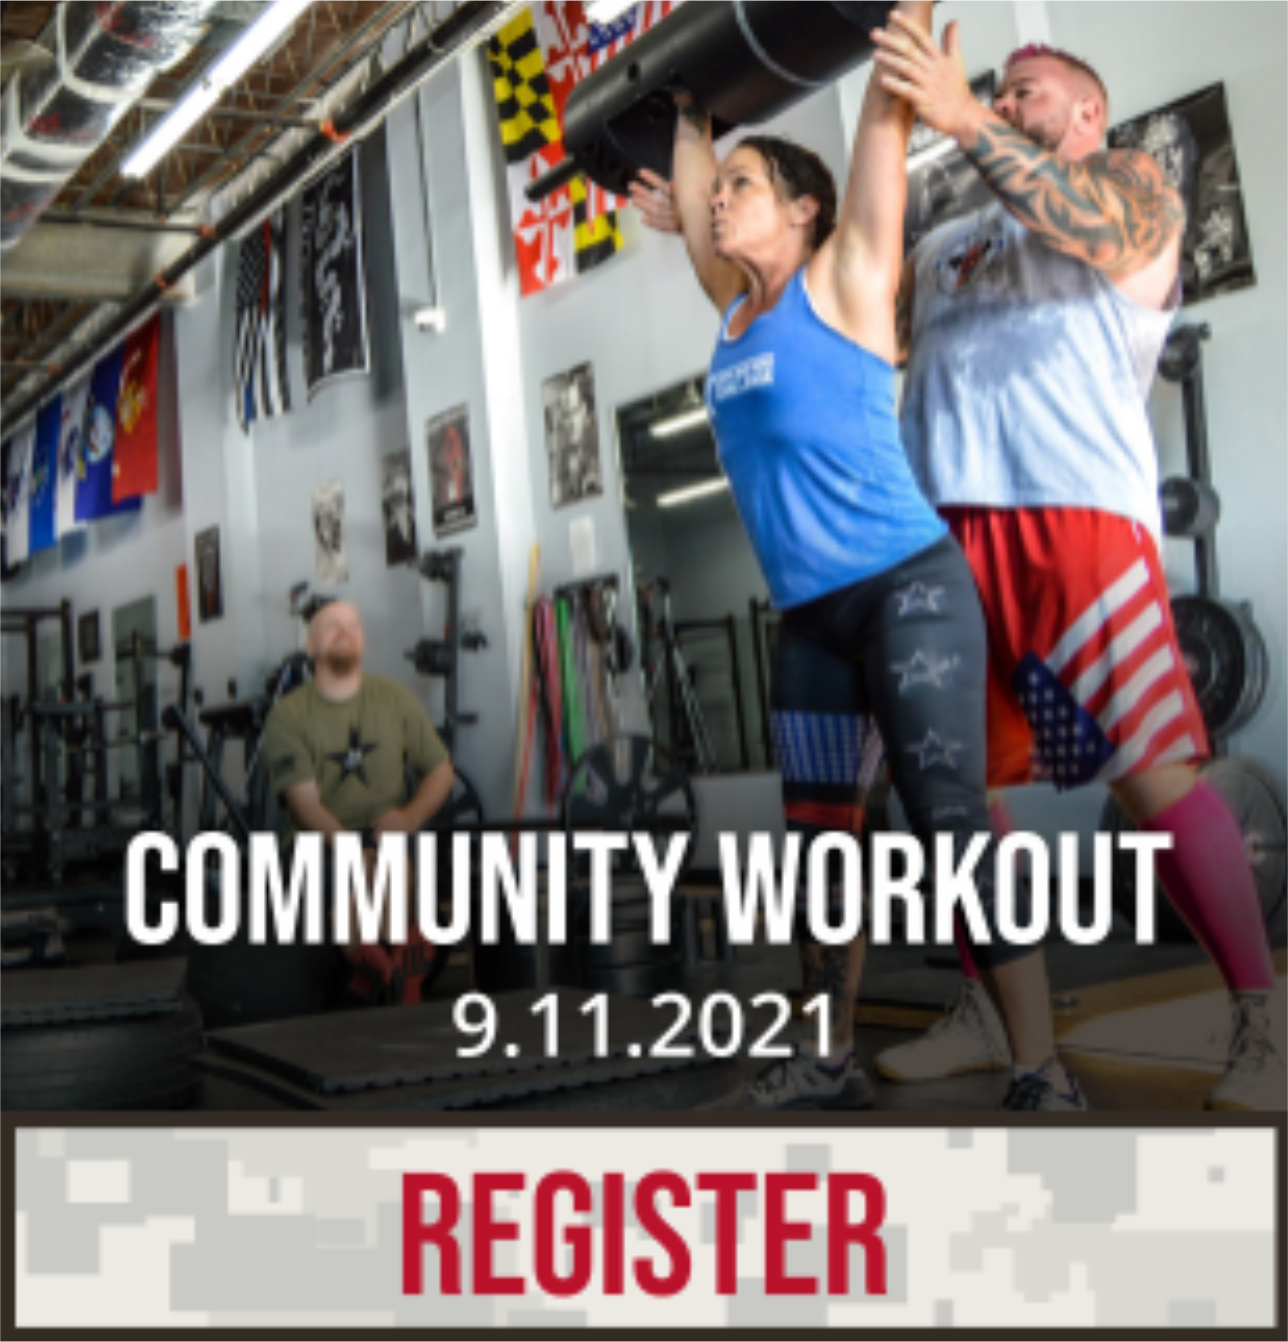 Community Workout 9/11/21. Click to register.